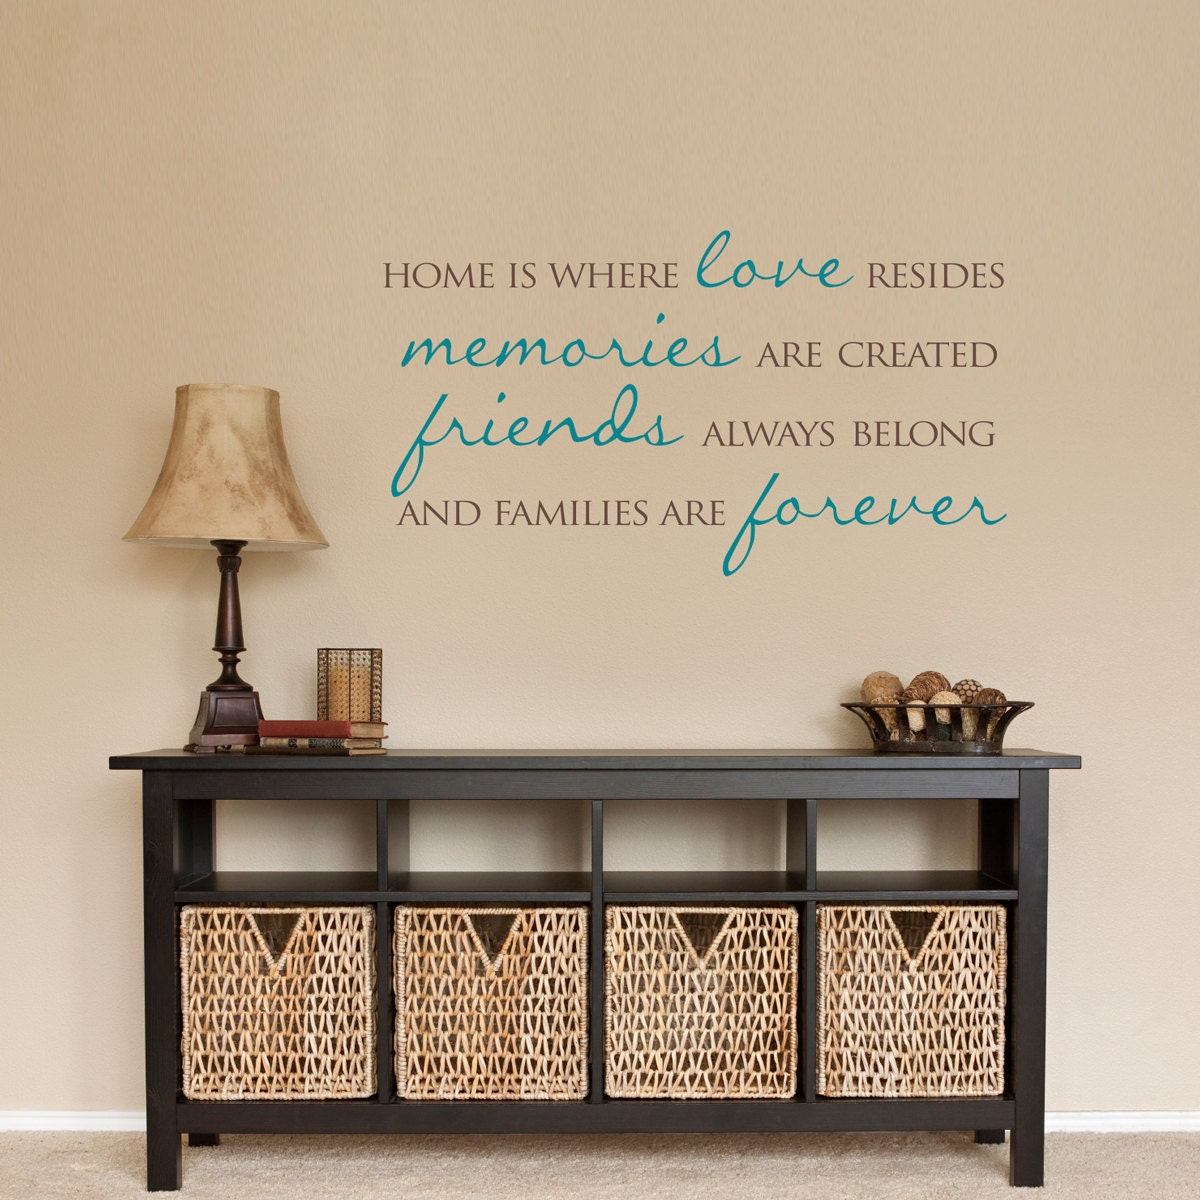 Home wall decal home is where love resides families are details home is where love resides wall decal amipublicfo Gallery